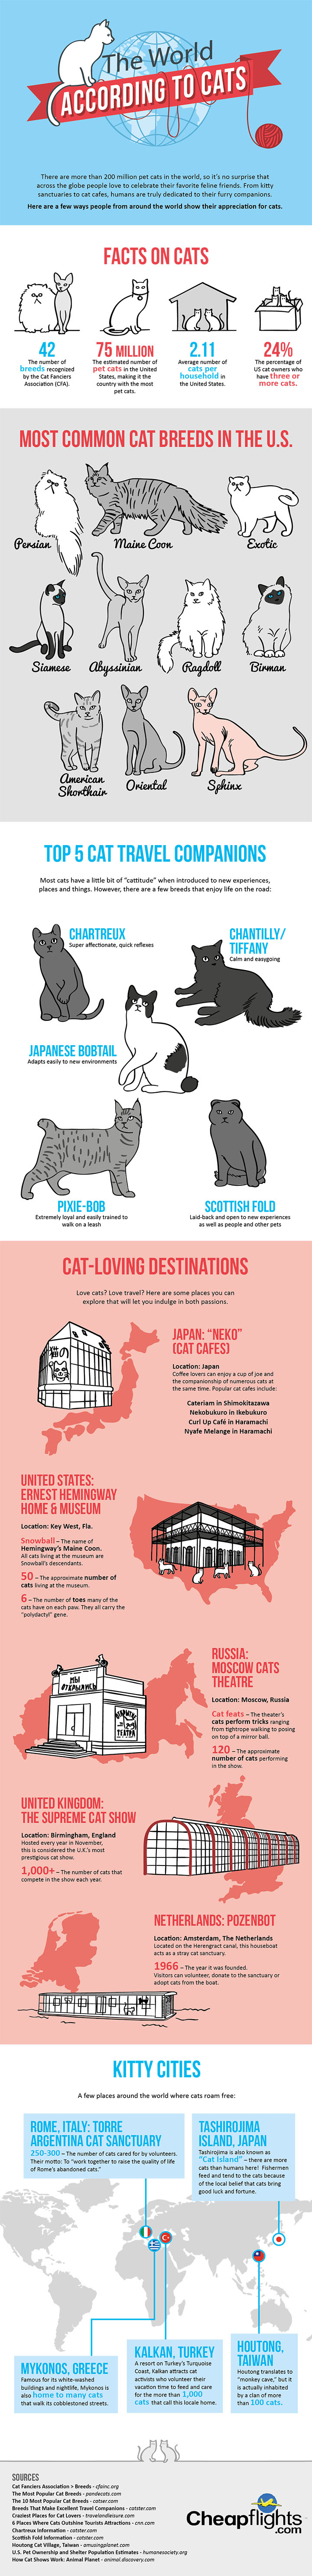 The world according to cats 1